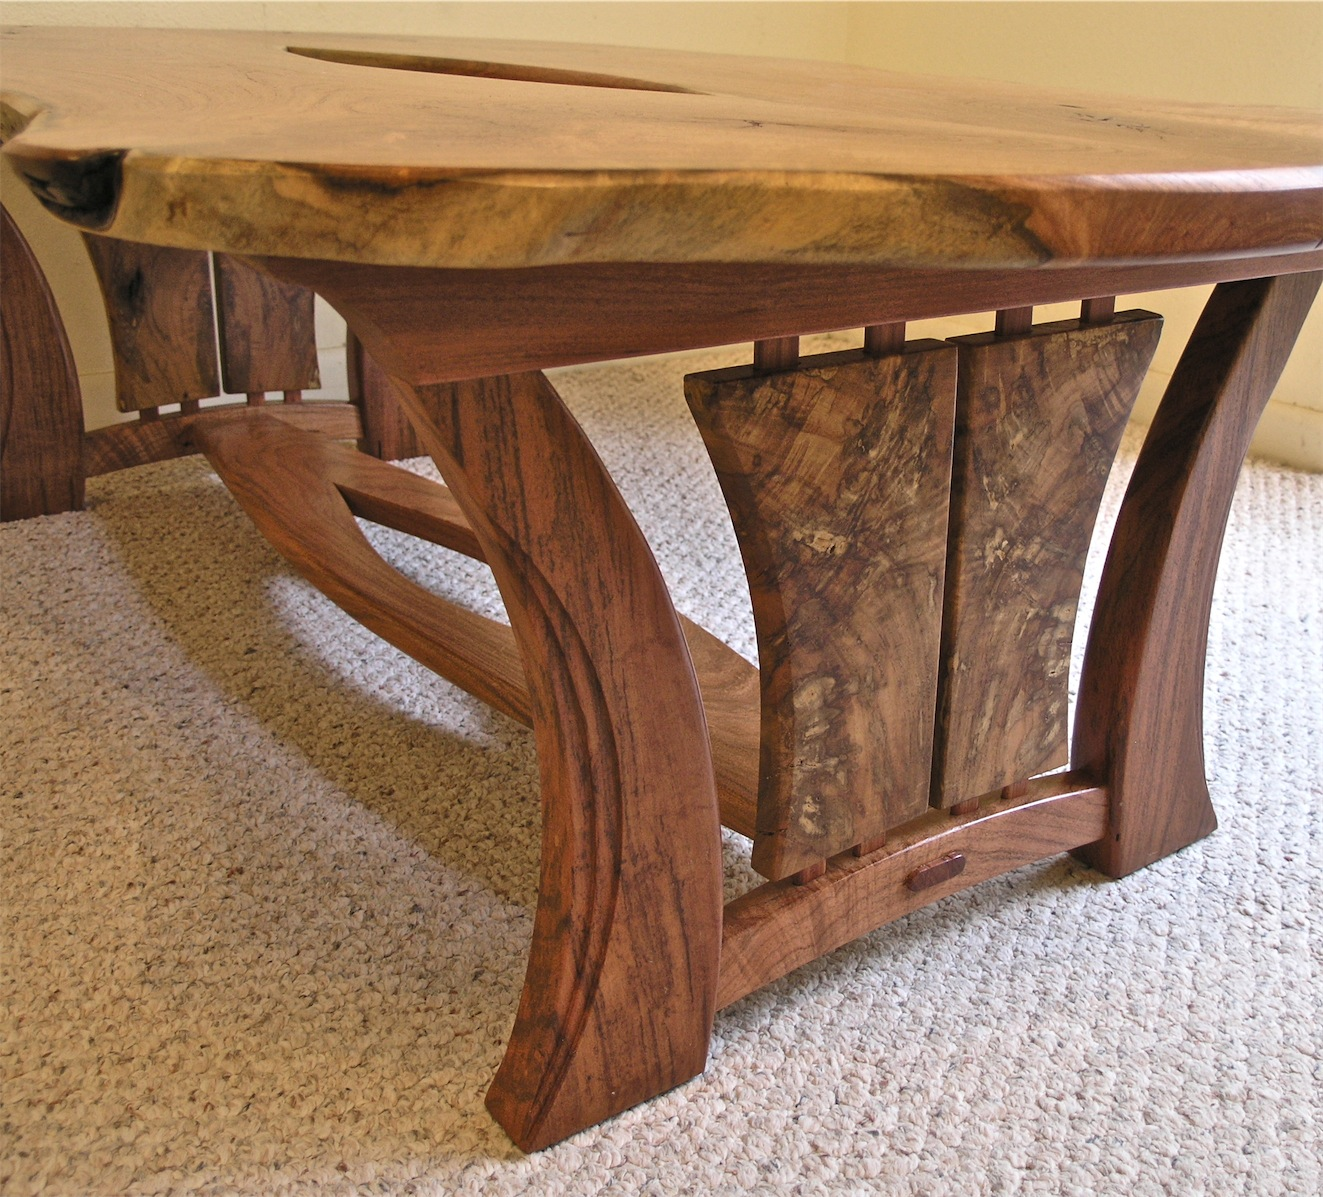 Live Edge Furniture Louis Fry A Makers Blog